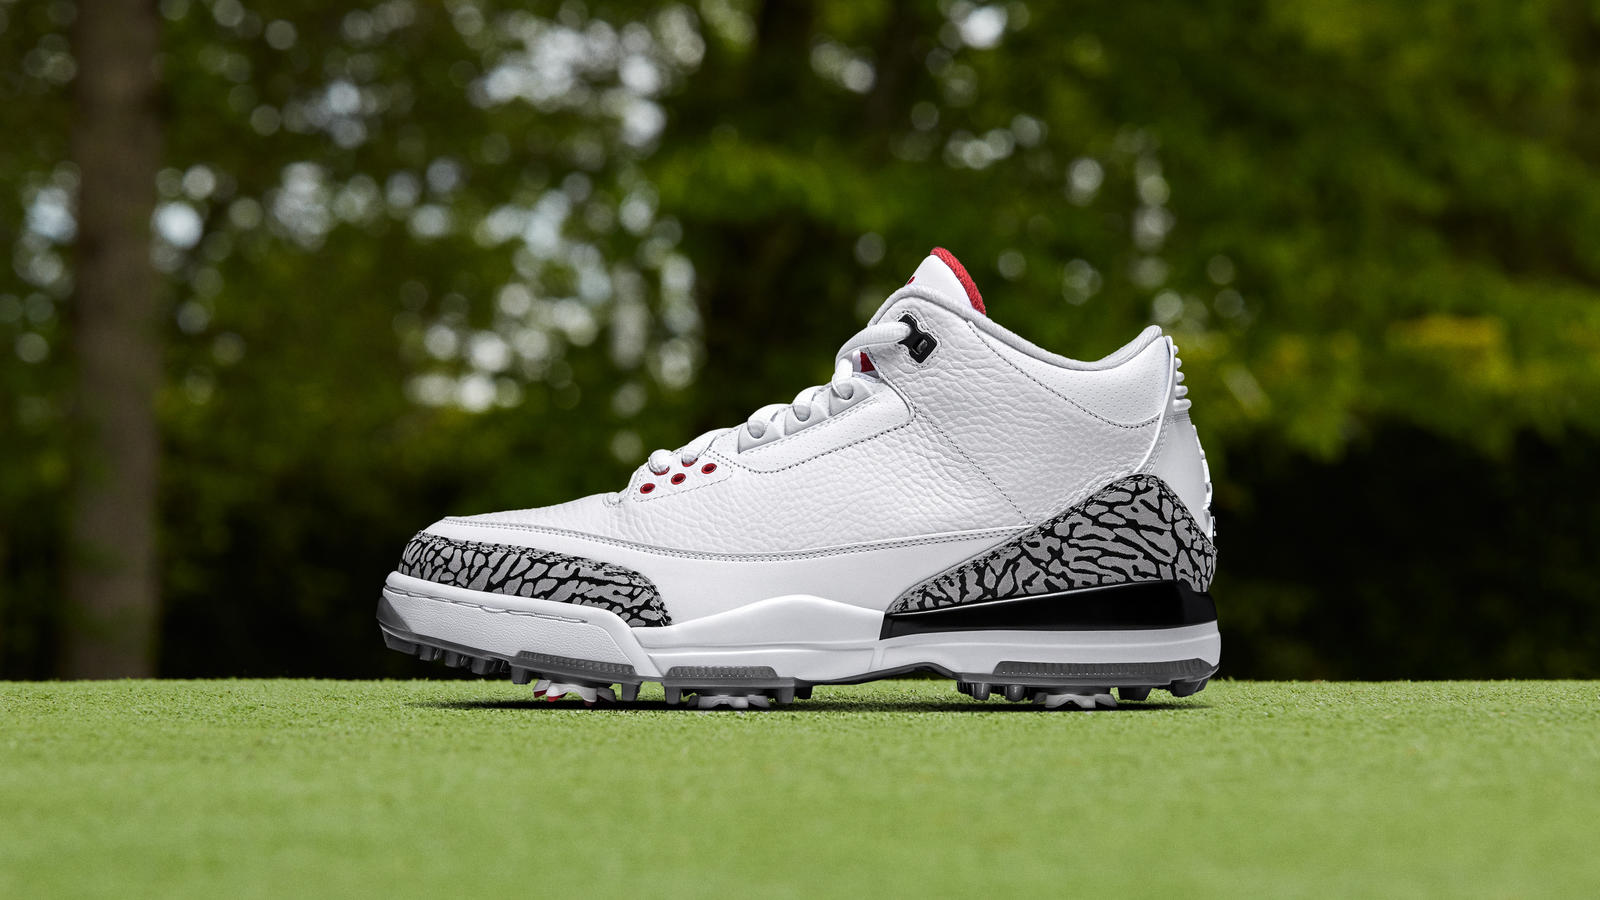 nike jordan golf shoes price